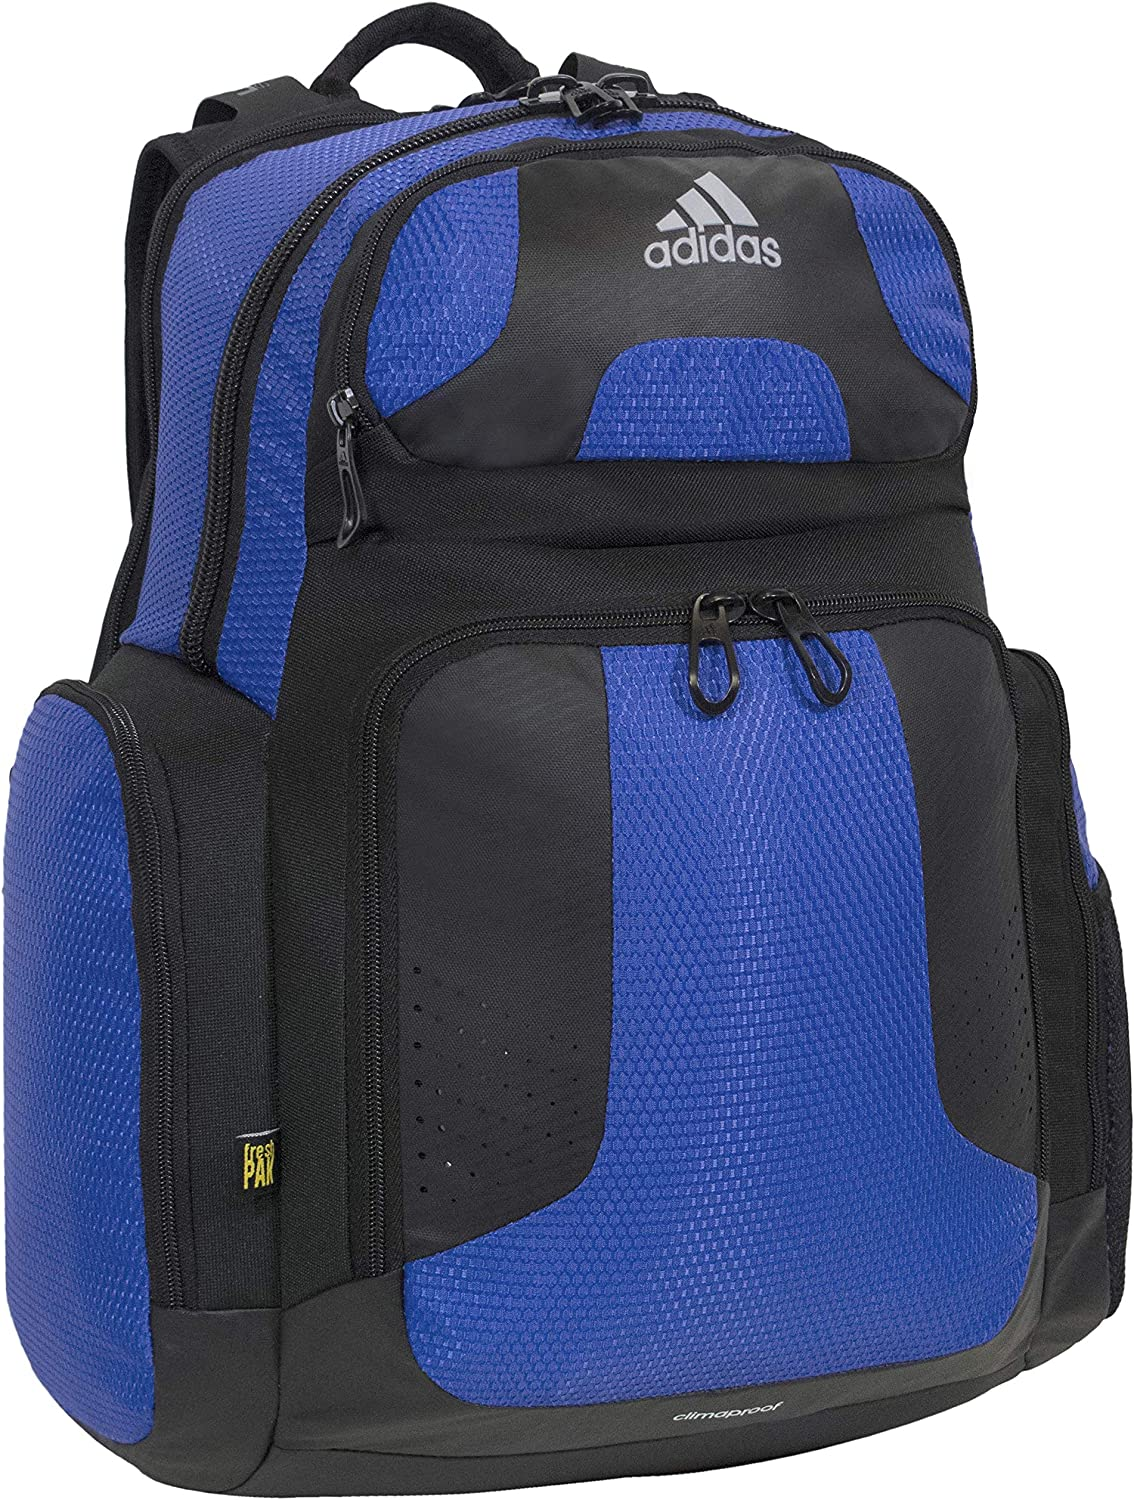 adidas Unisex Climacool Strength Backpack